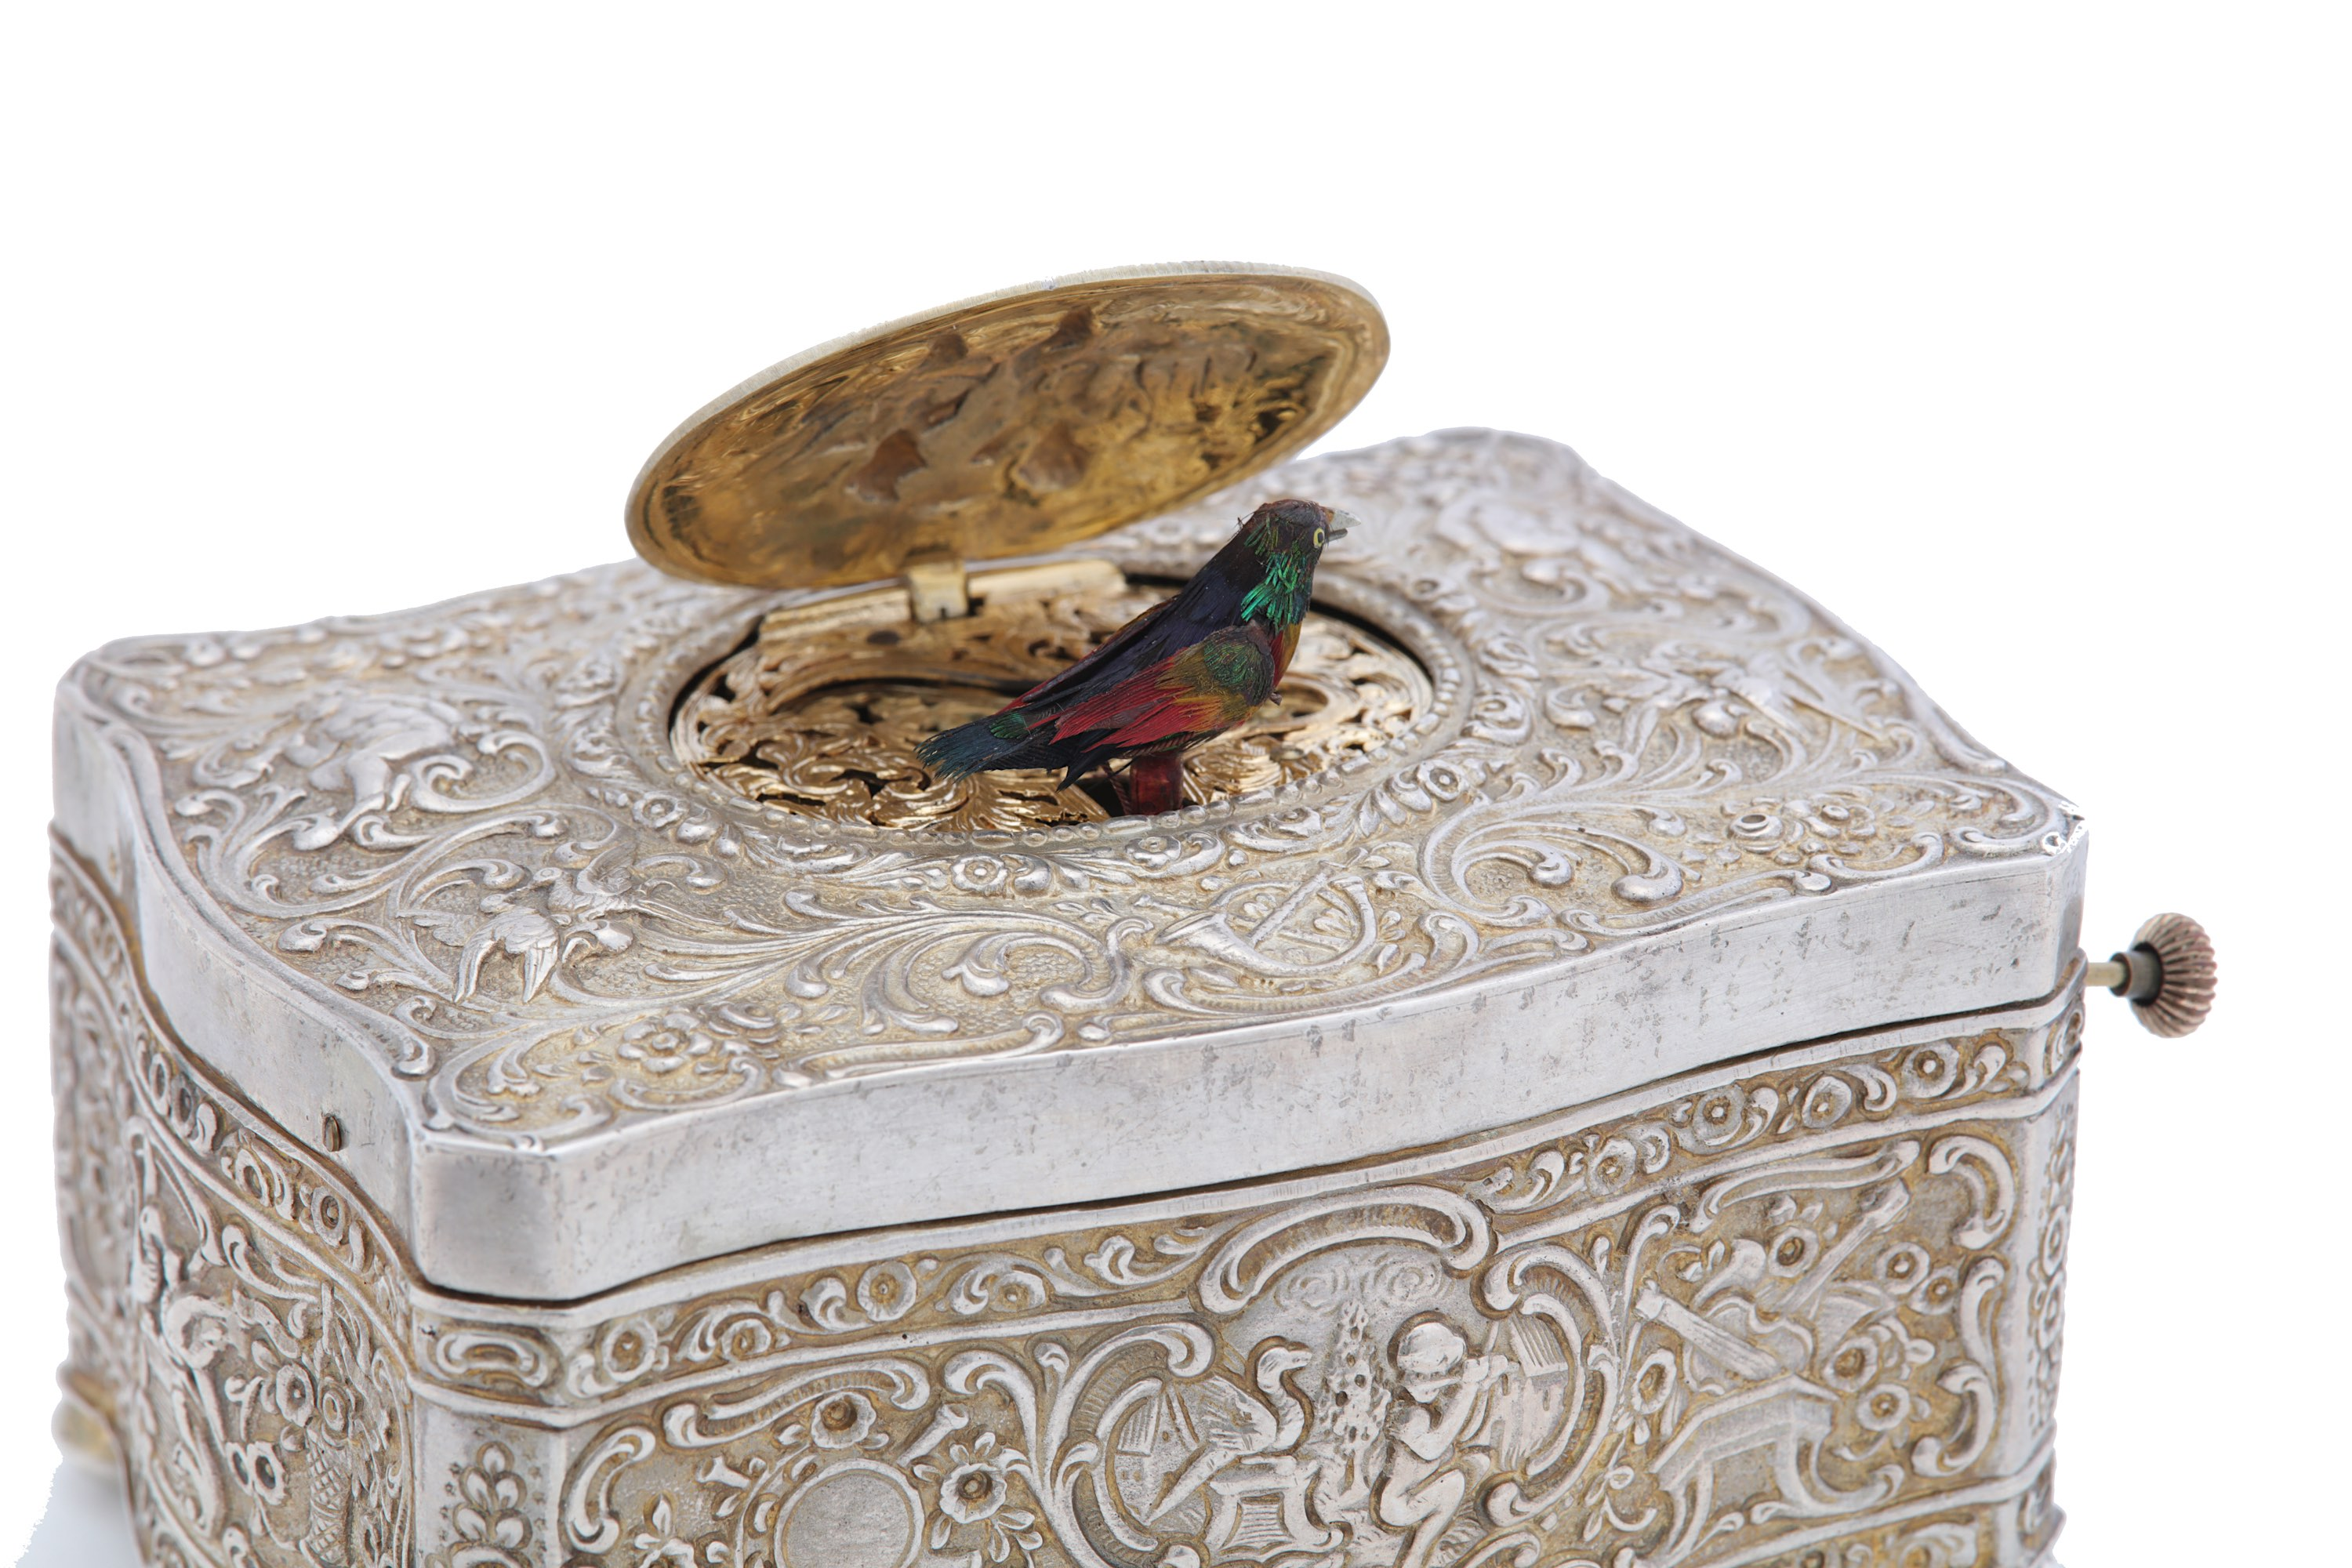 Lot 27 - An early 20th century sterling silver-gilt singing bird box, by Karl Griesbaum circa 1930